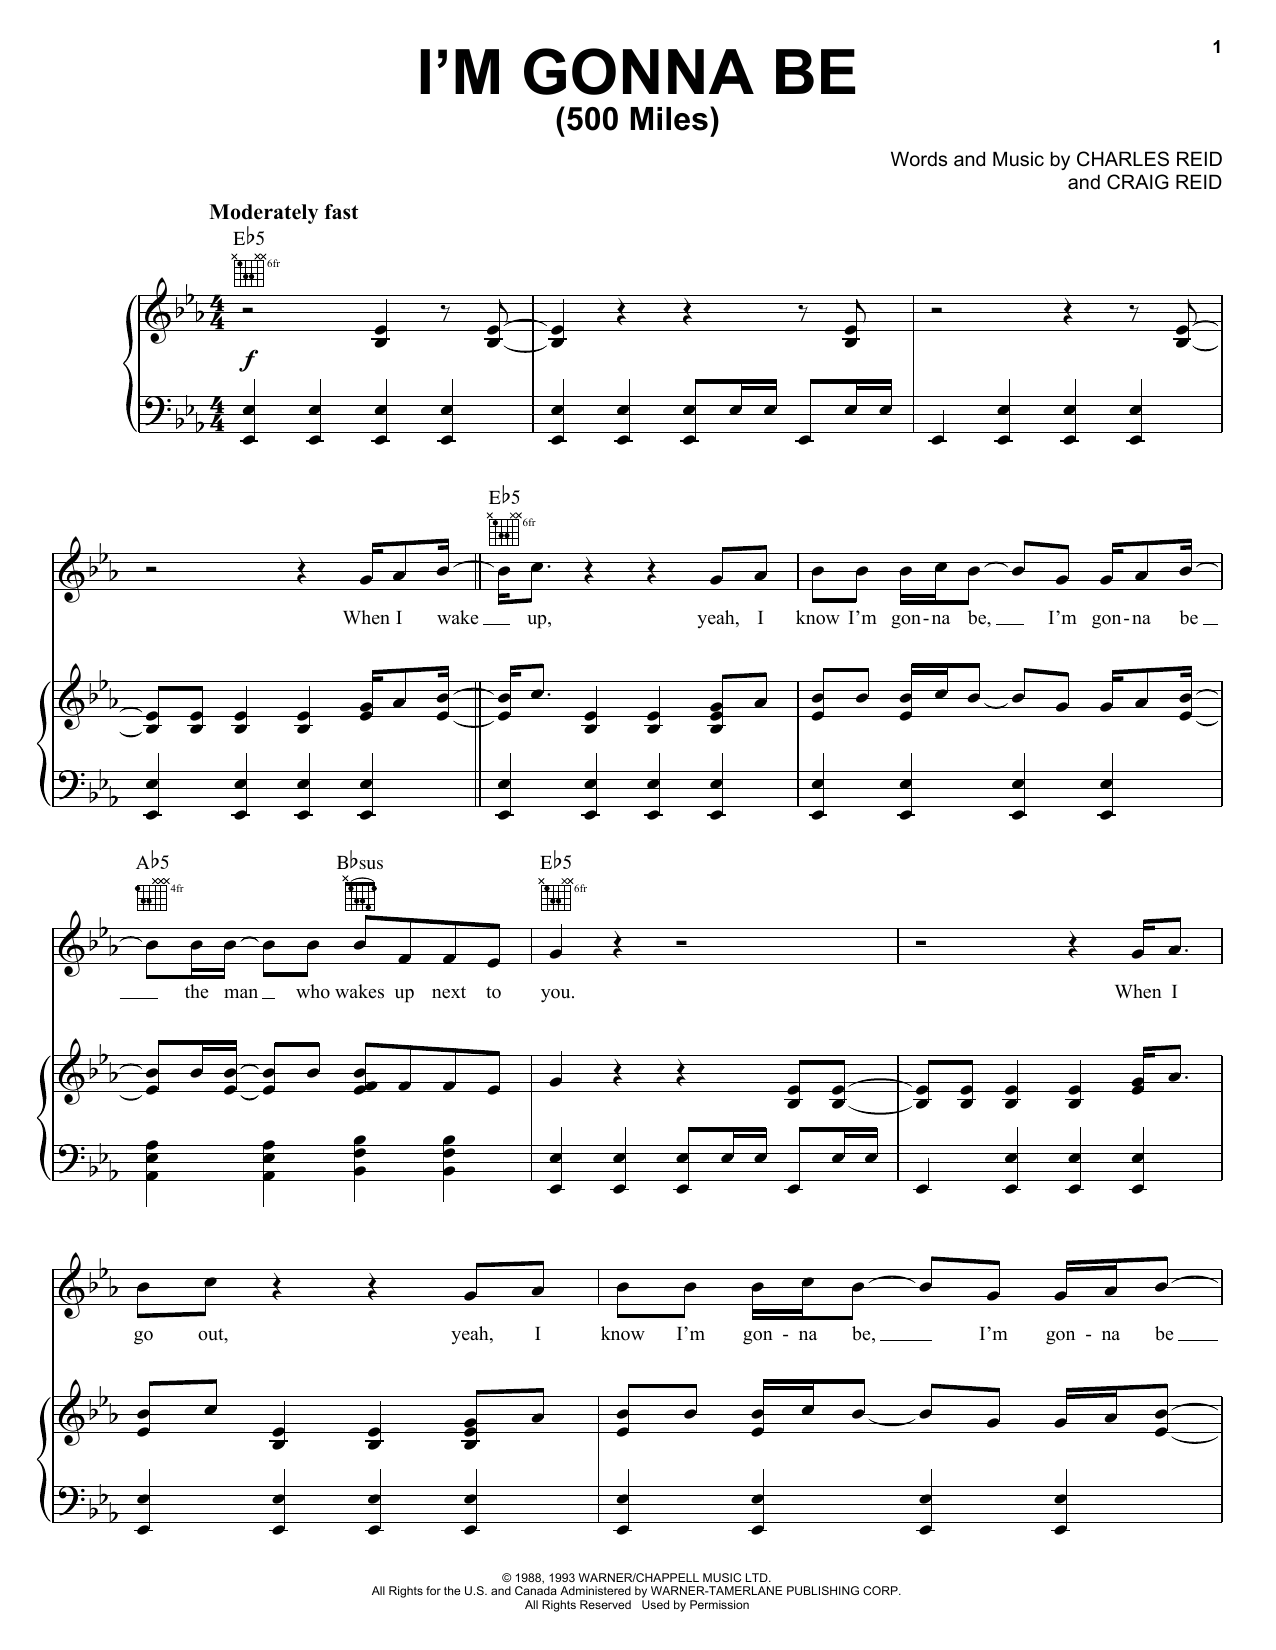 Steven Curtis Chapman I'm Gonna Be 15 Miles Sheet Music Notes, Chords    Download Printable Piano, Vocal & Guitar Right Hand Melody PDF Score   ...